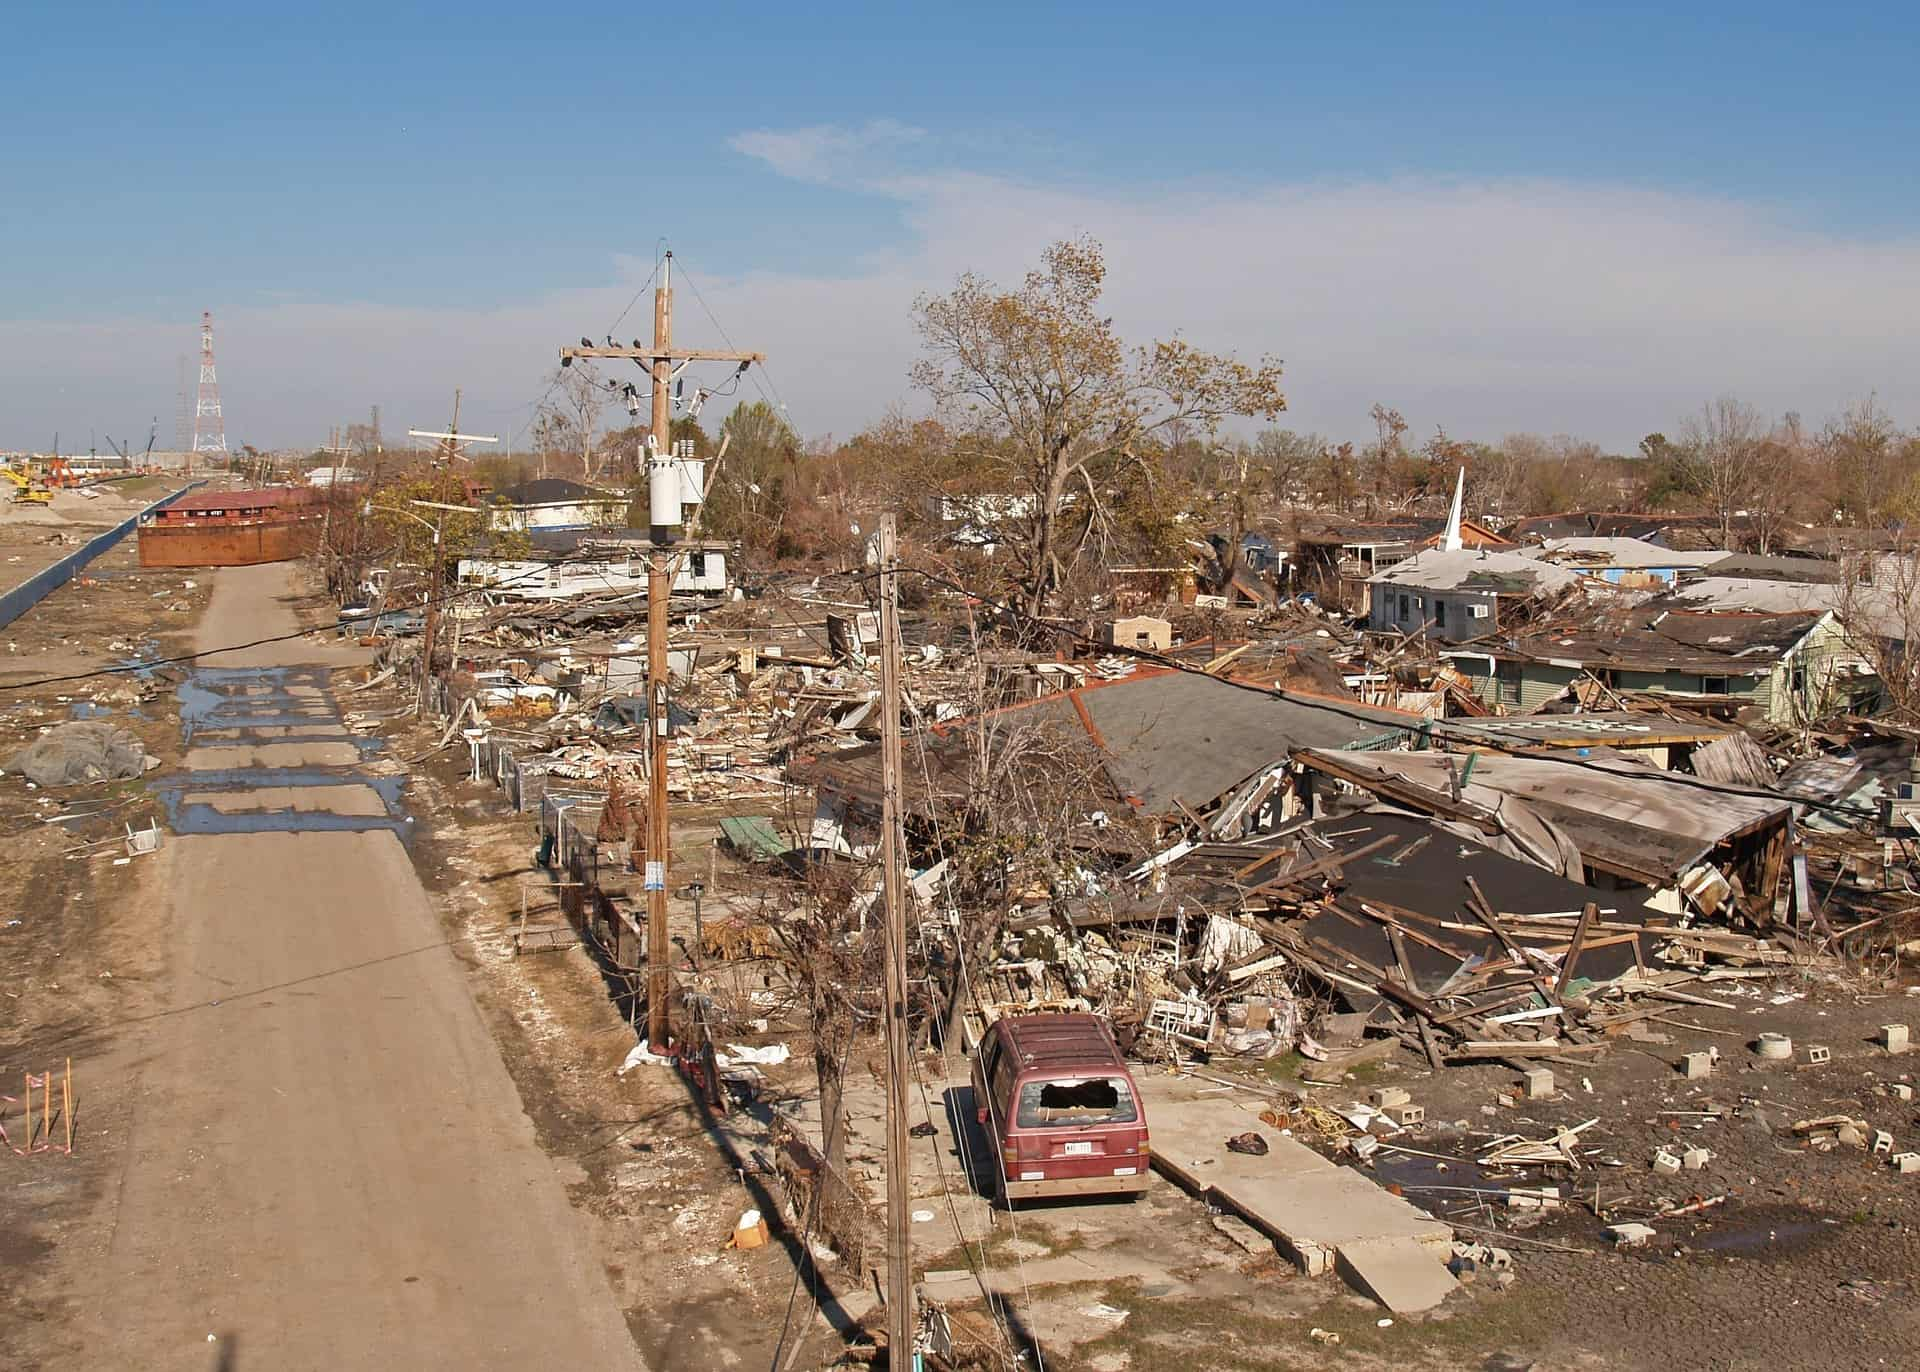 city rubble left by a tornado